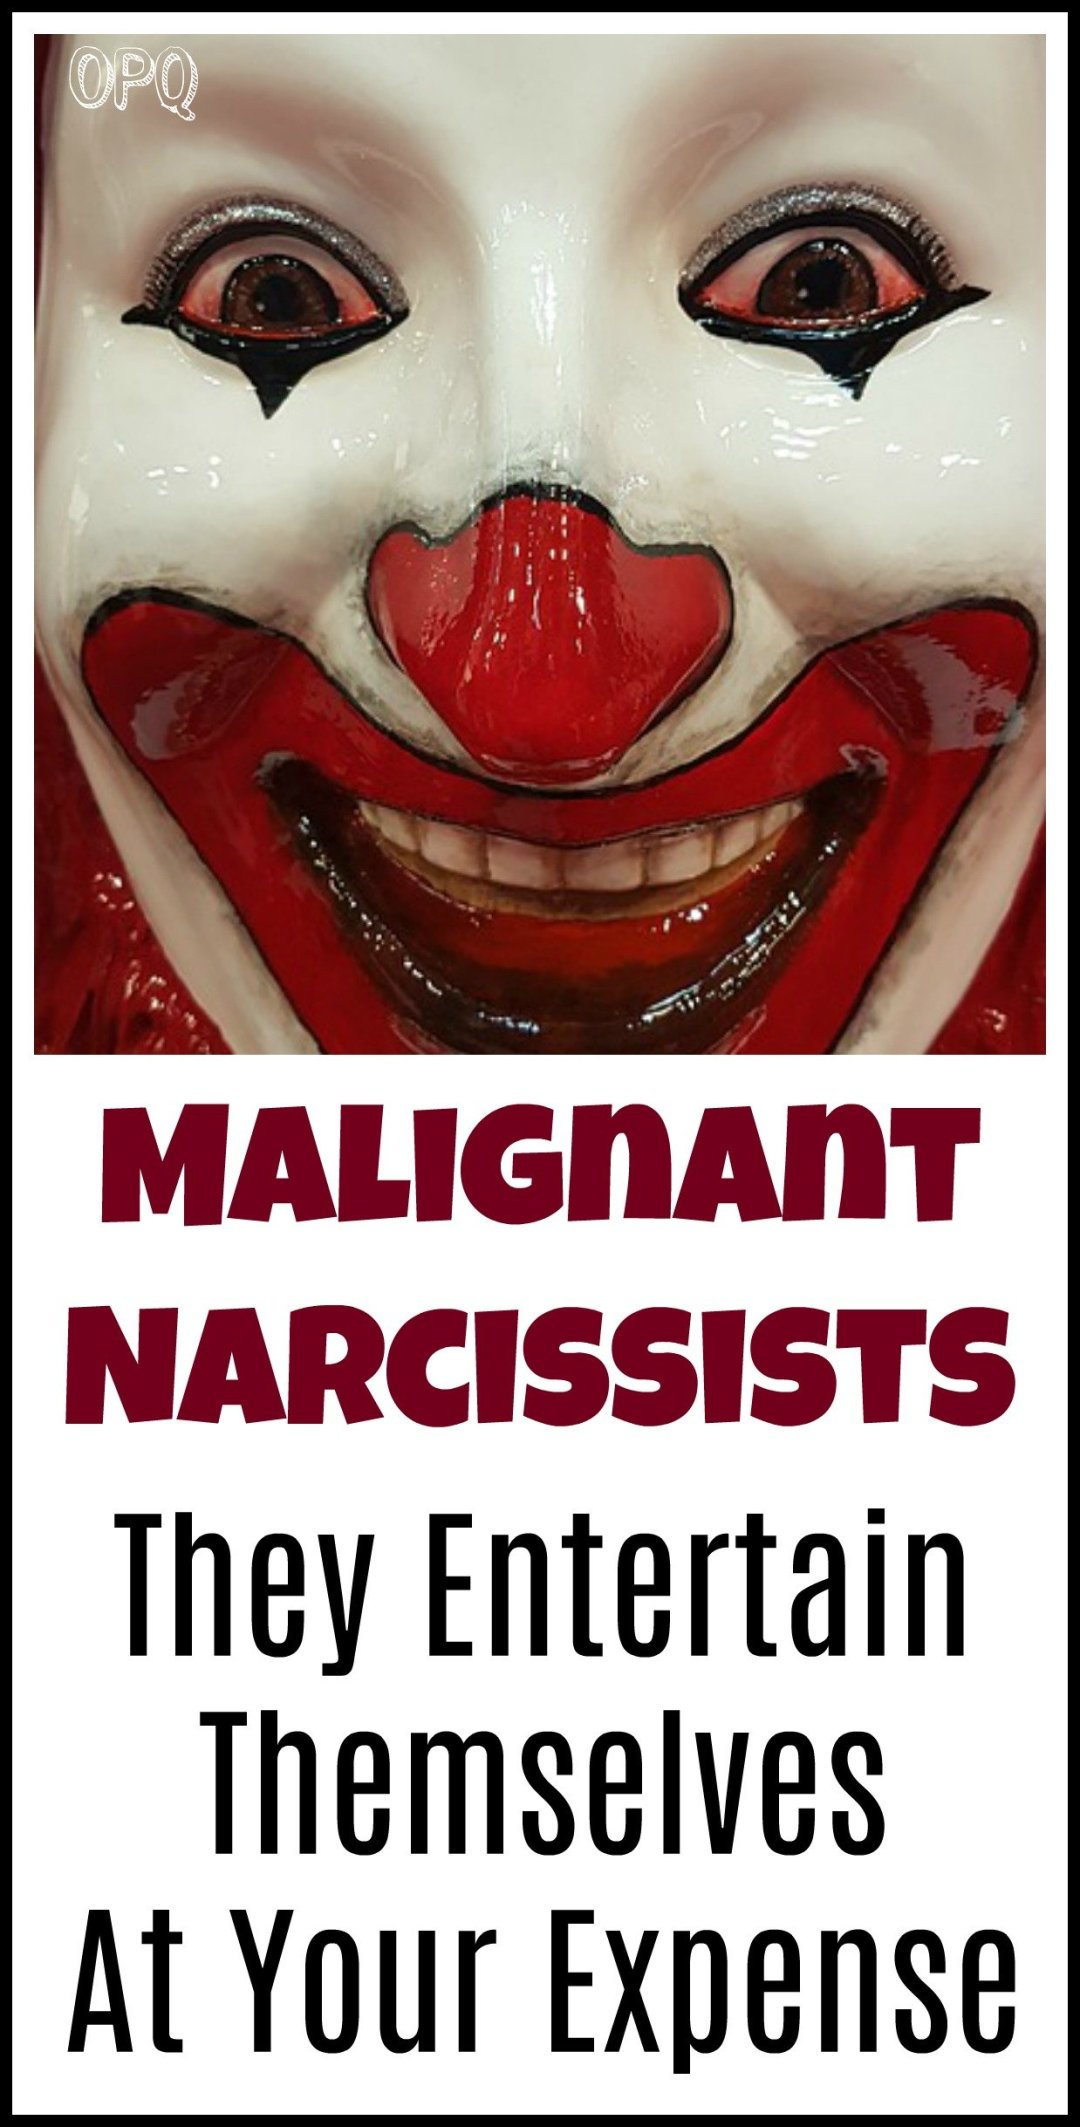 Narcissists entertain themselves at your expense